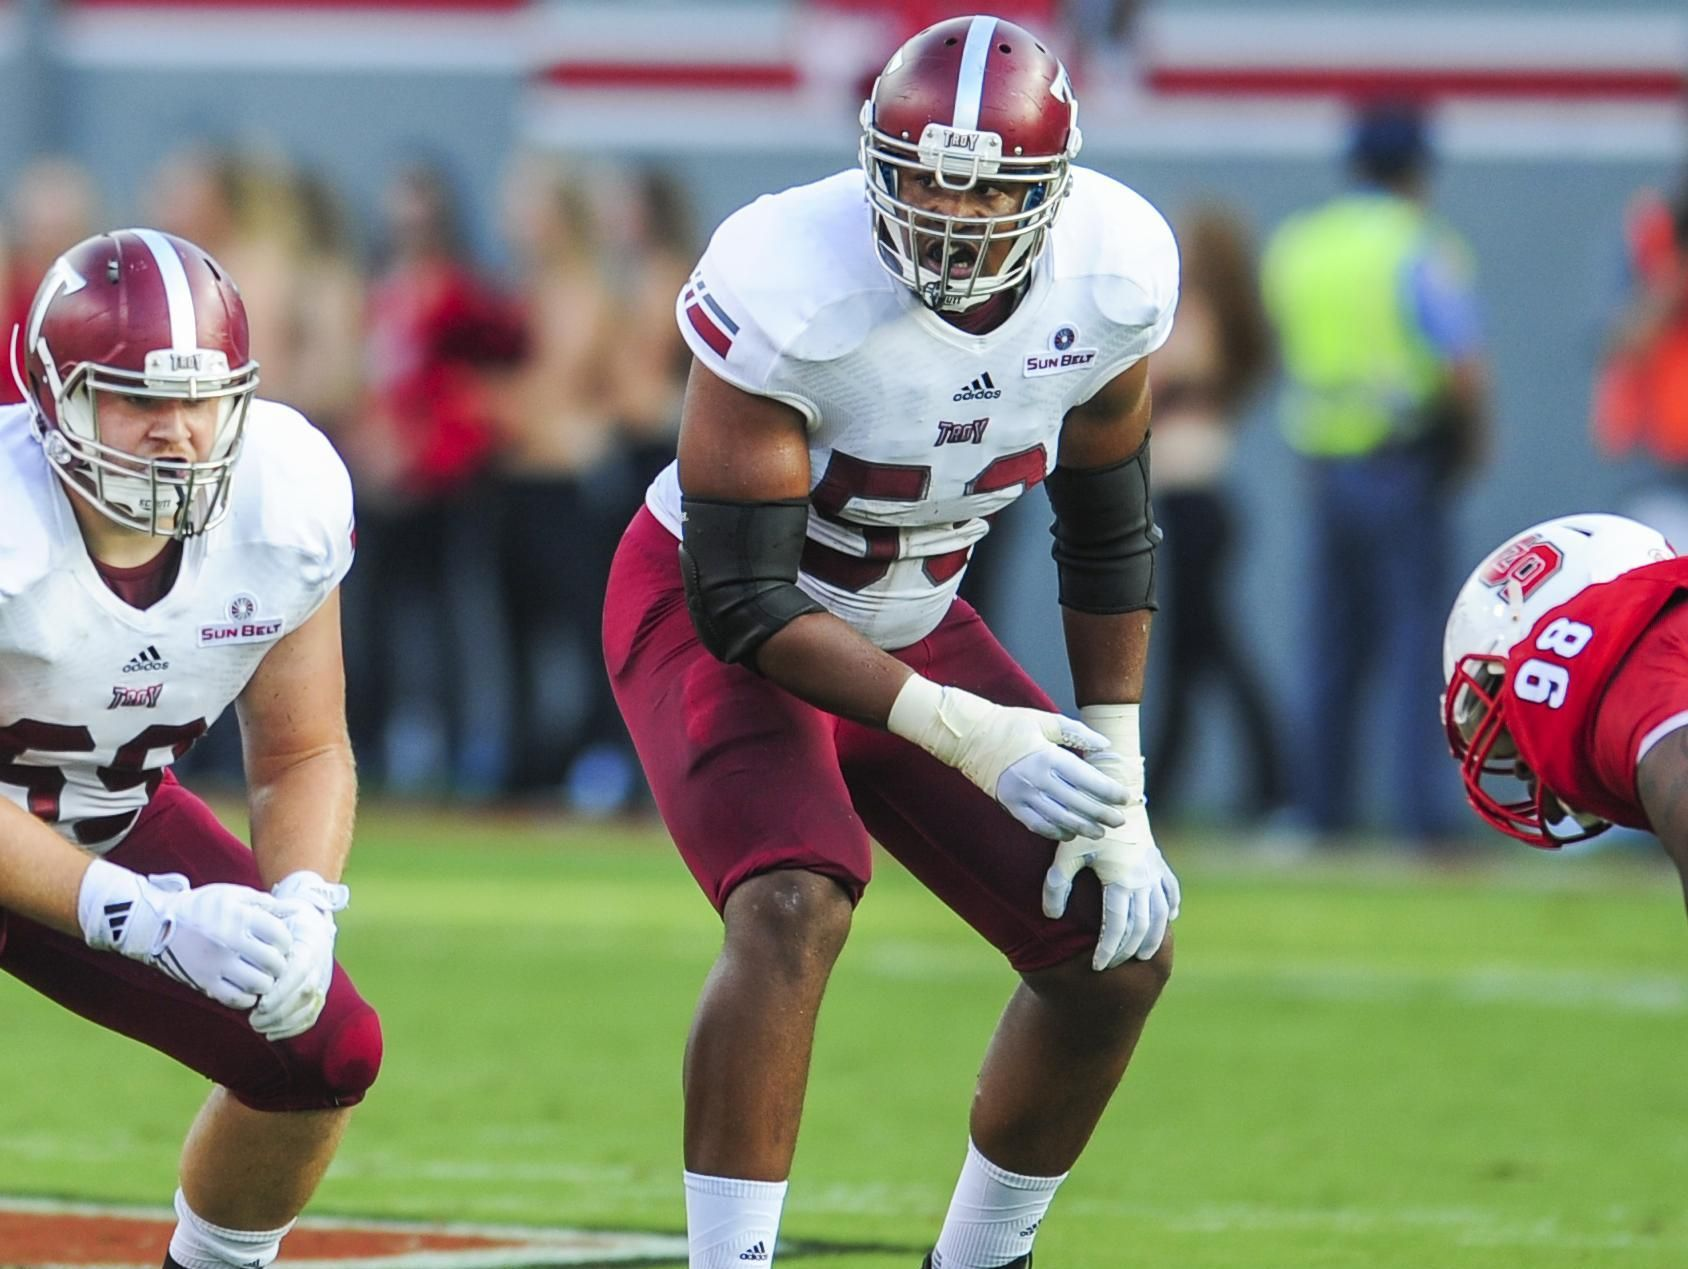 Antonio Garcia will have an opportunity to improve his draft stock in the NFL combine.